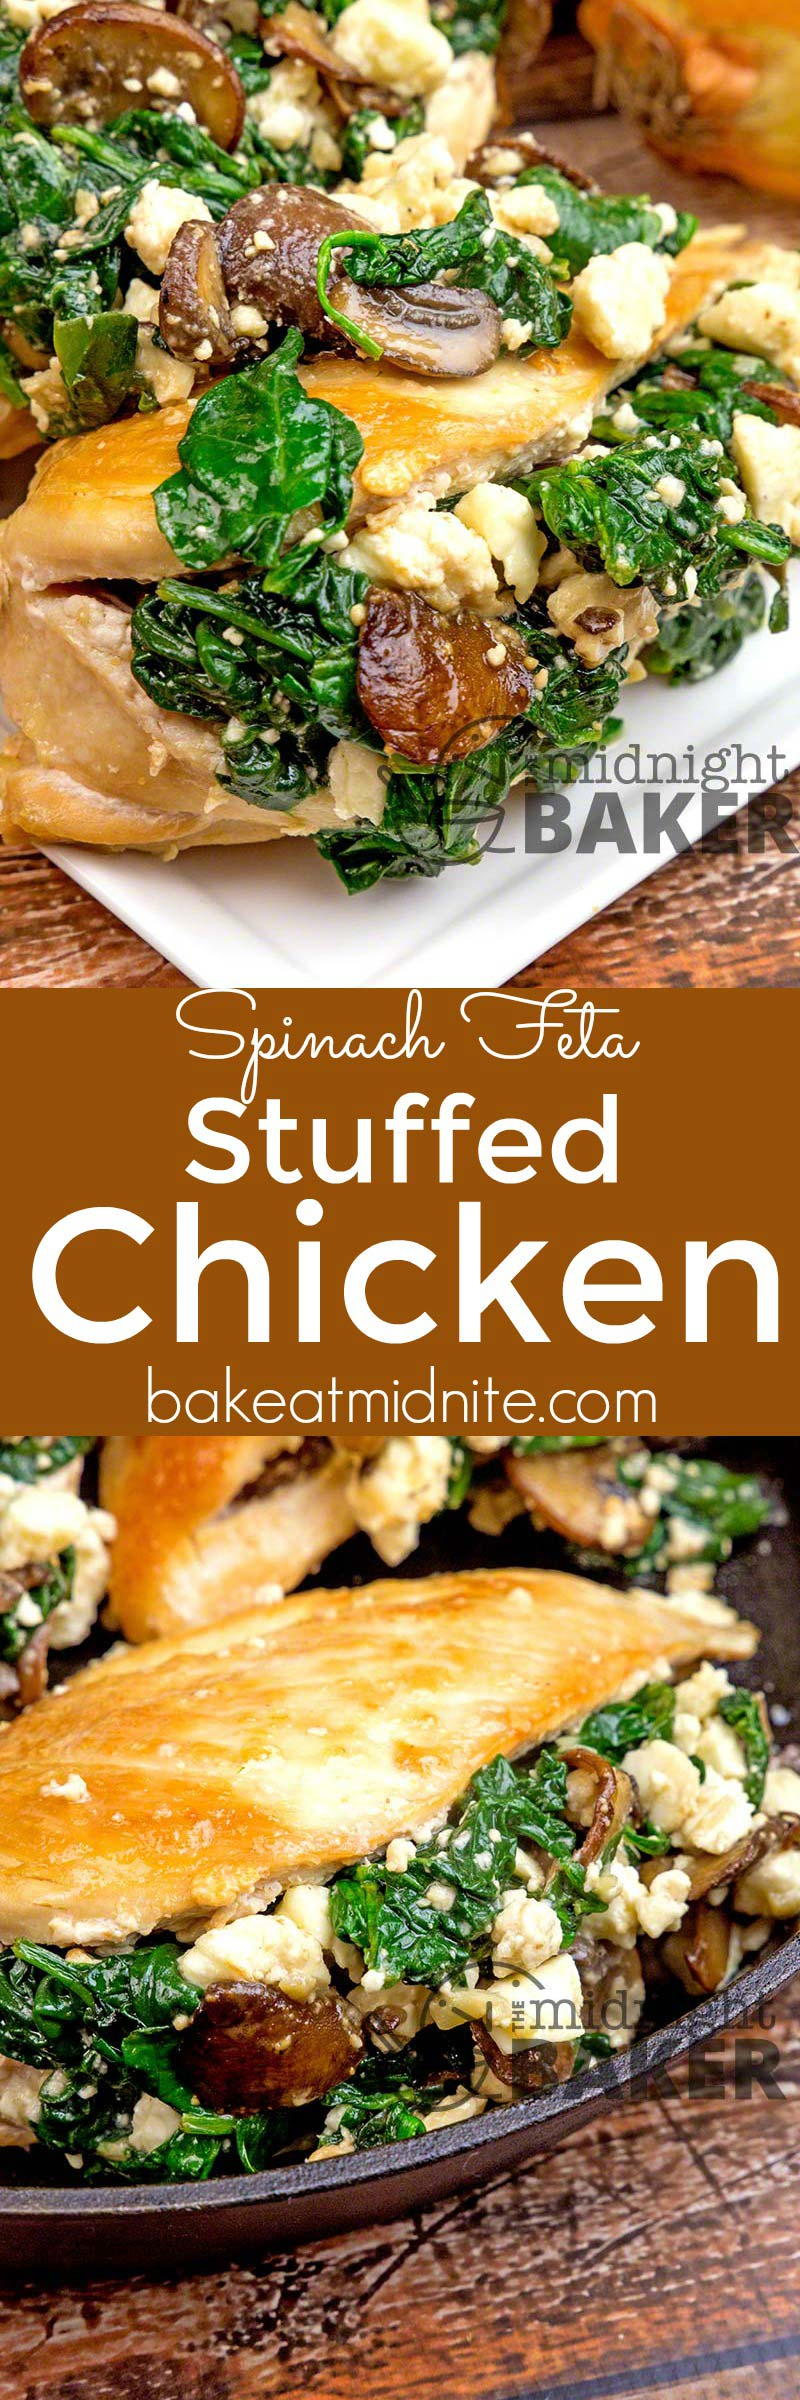 Baby spinach and tangy feta cheese is just the right stuffing for these chicken breasts.